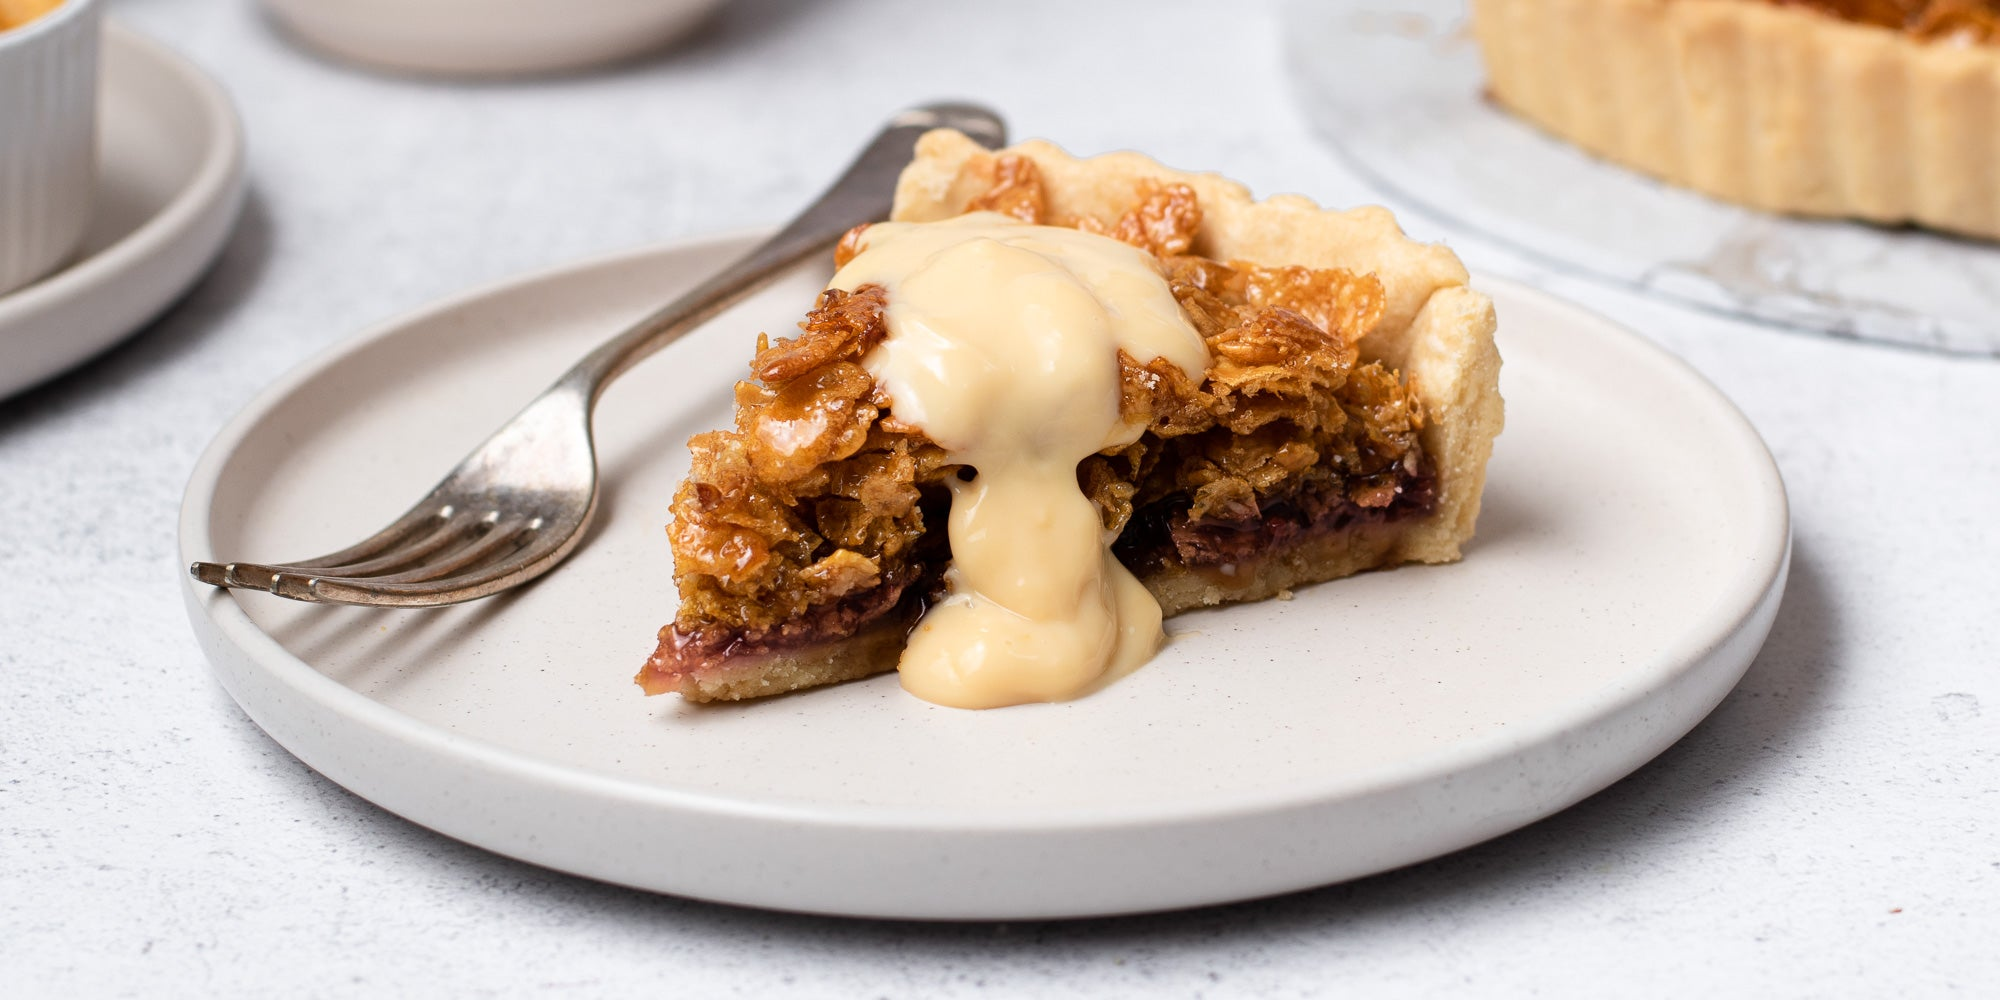 Cornflake Tart with custard on a plate with fork